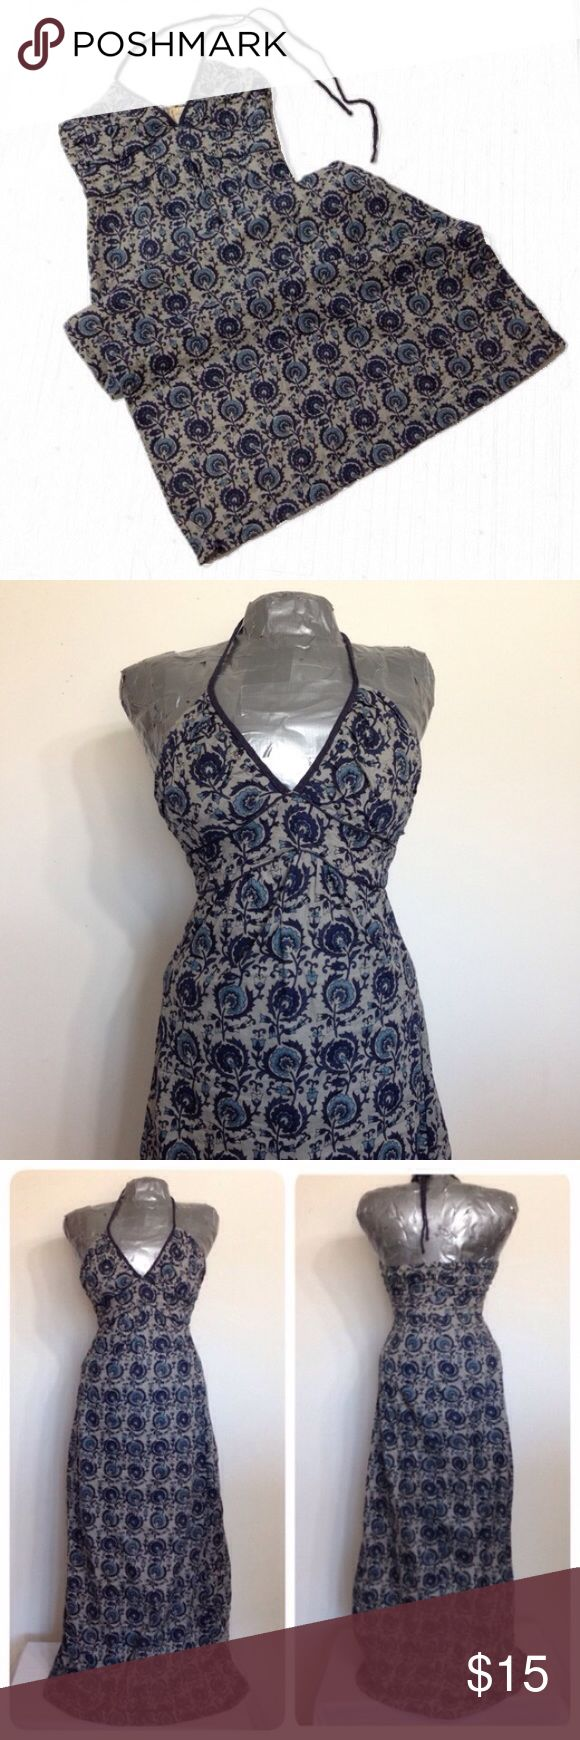 Crib for sale kijiji toronto - Mossimo Long Dress Floral Print 5 20 Sale Beautiful Long Dress Size Small